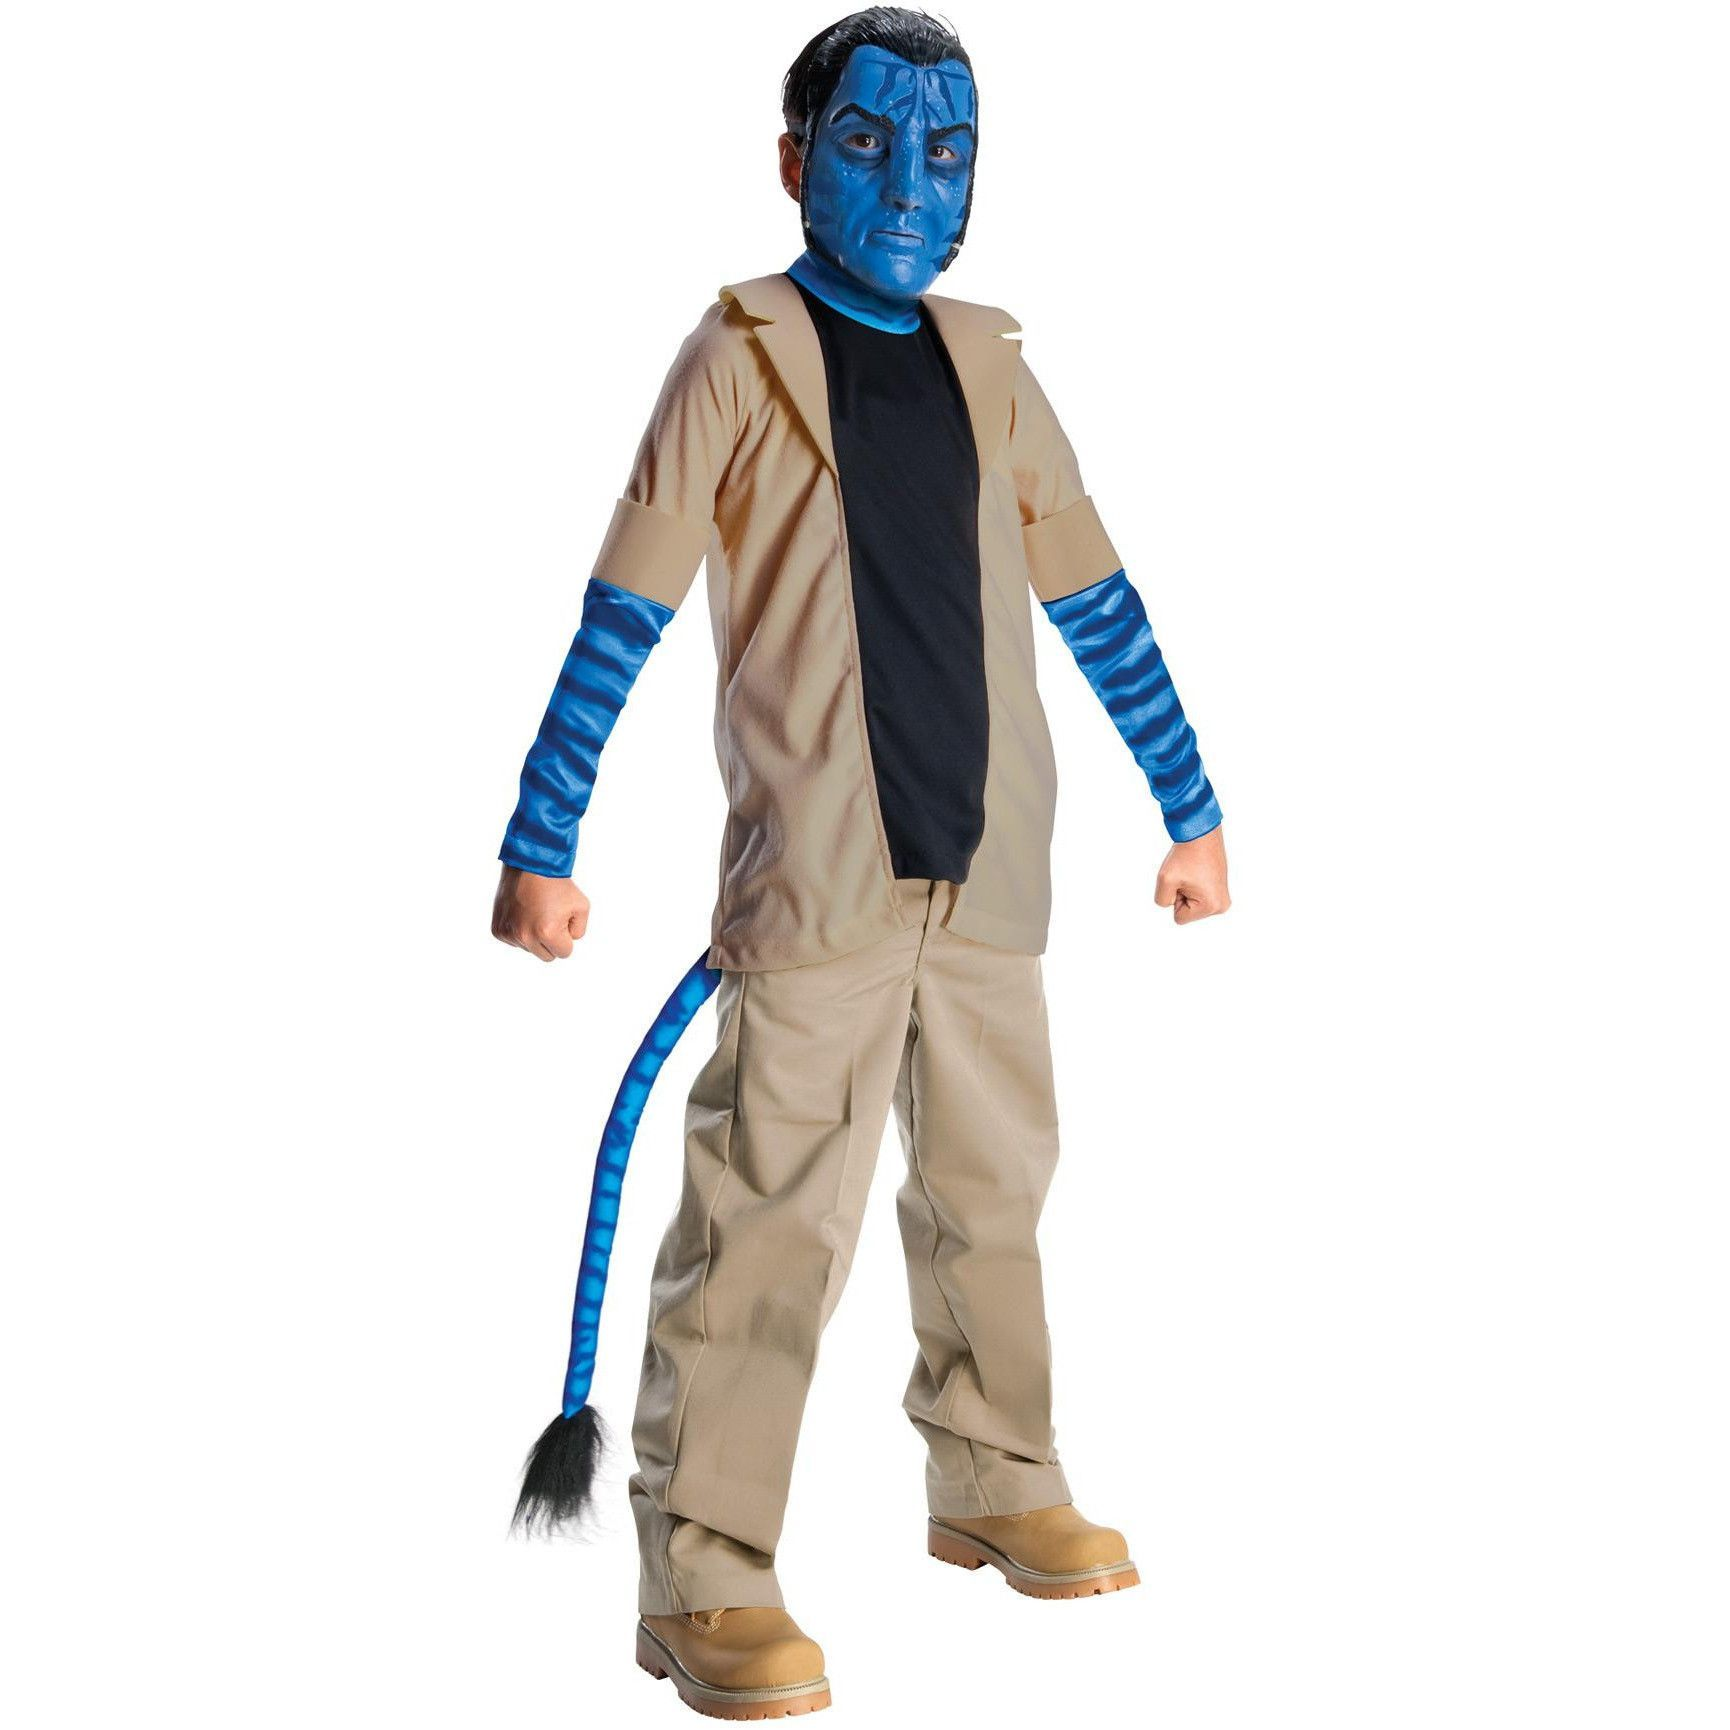 Avatar Jake Sulley Child Medim | Products